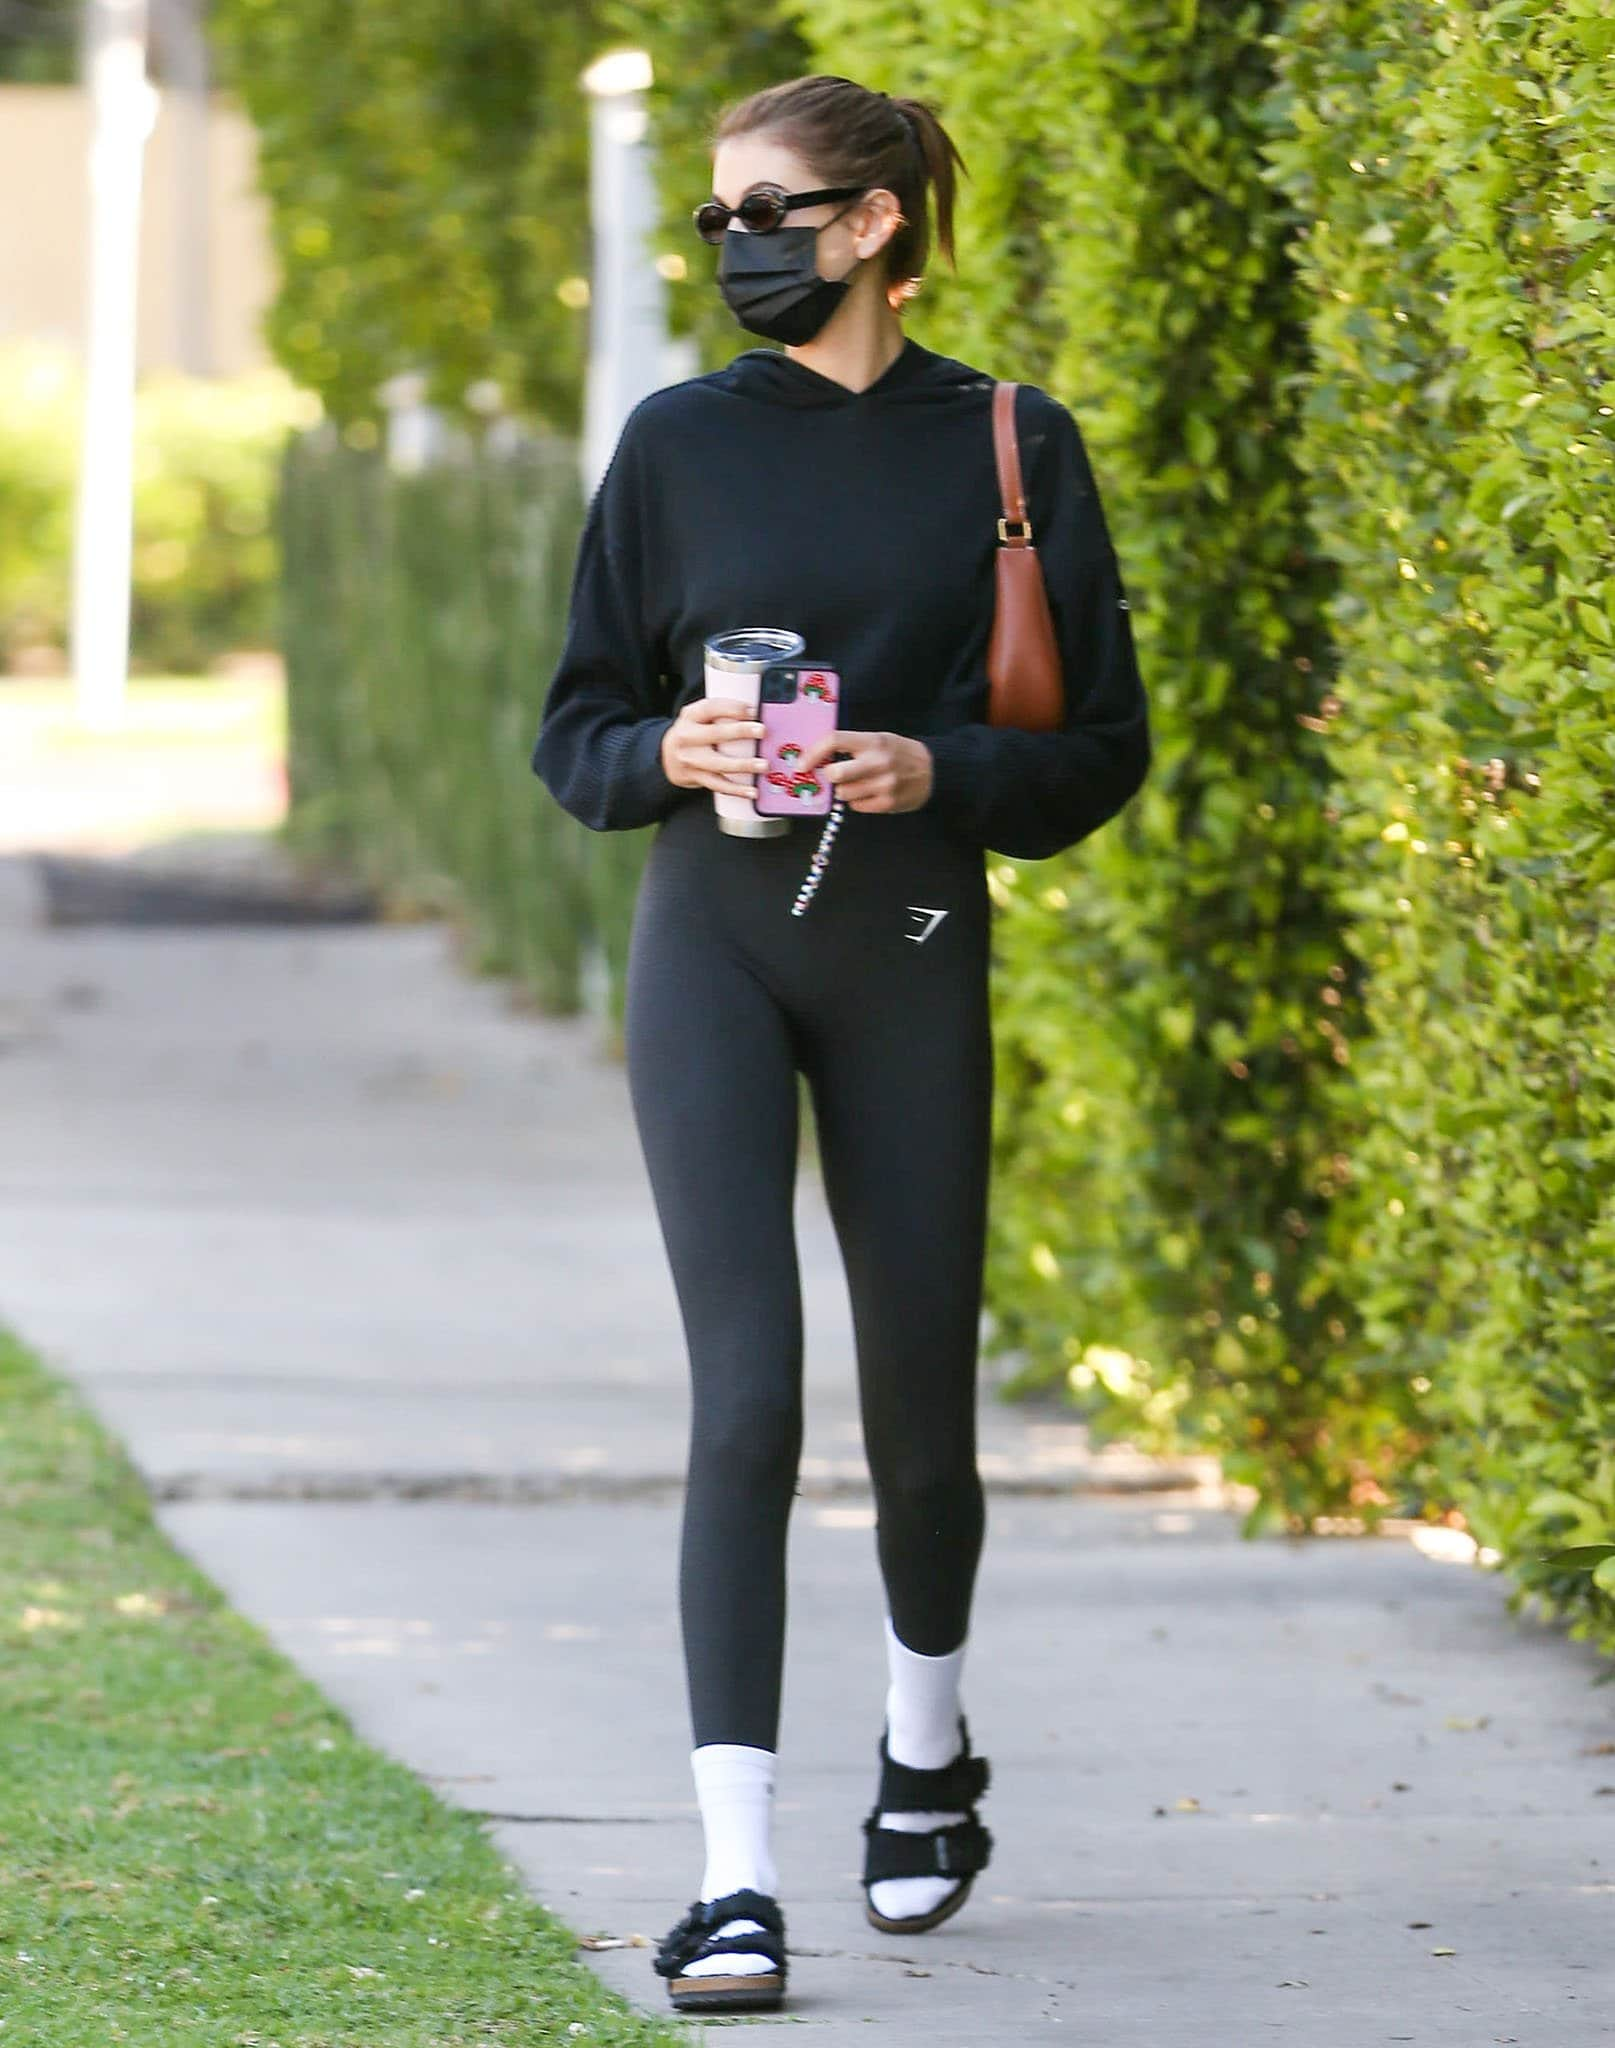 Kaia Gerber wears her furry Birks with Active Set white socks, Gymshark leggings, and Alo Yoga hoodie on April 1, 2021